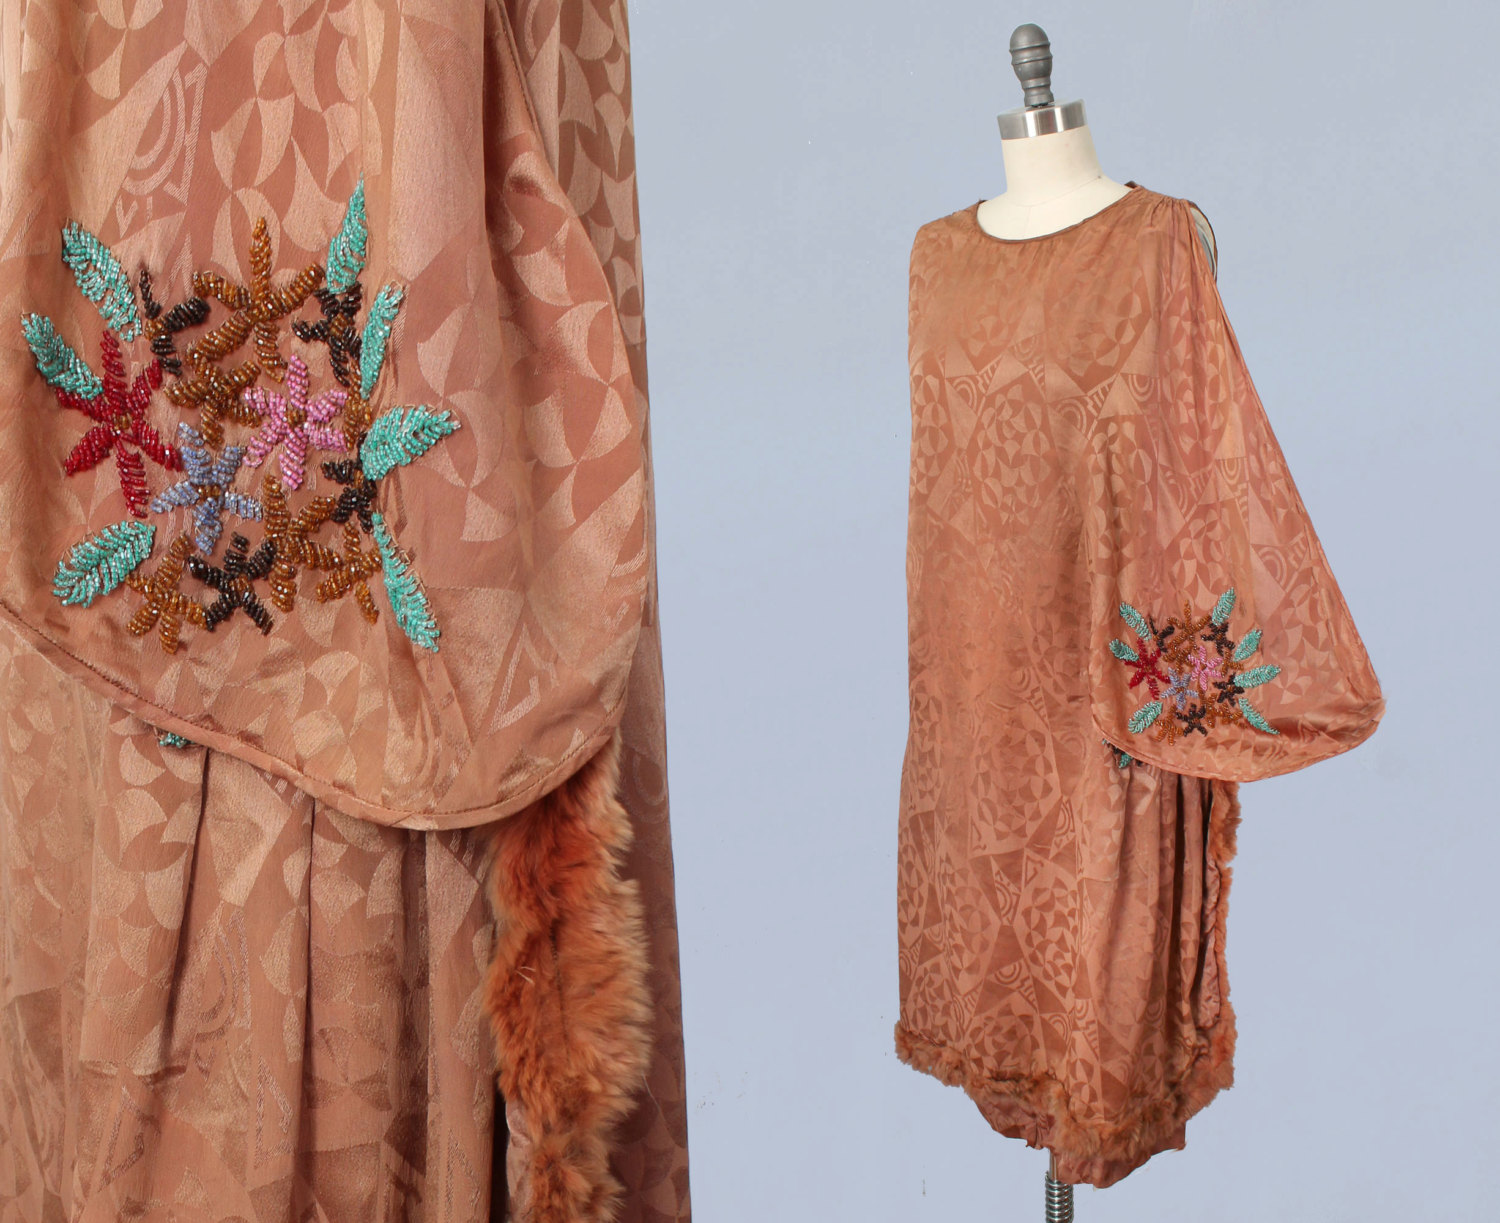 Brown art deco motif jacquard silk dress with floral beading and fur trim. 1920s.